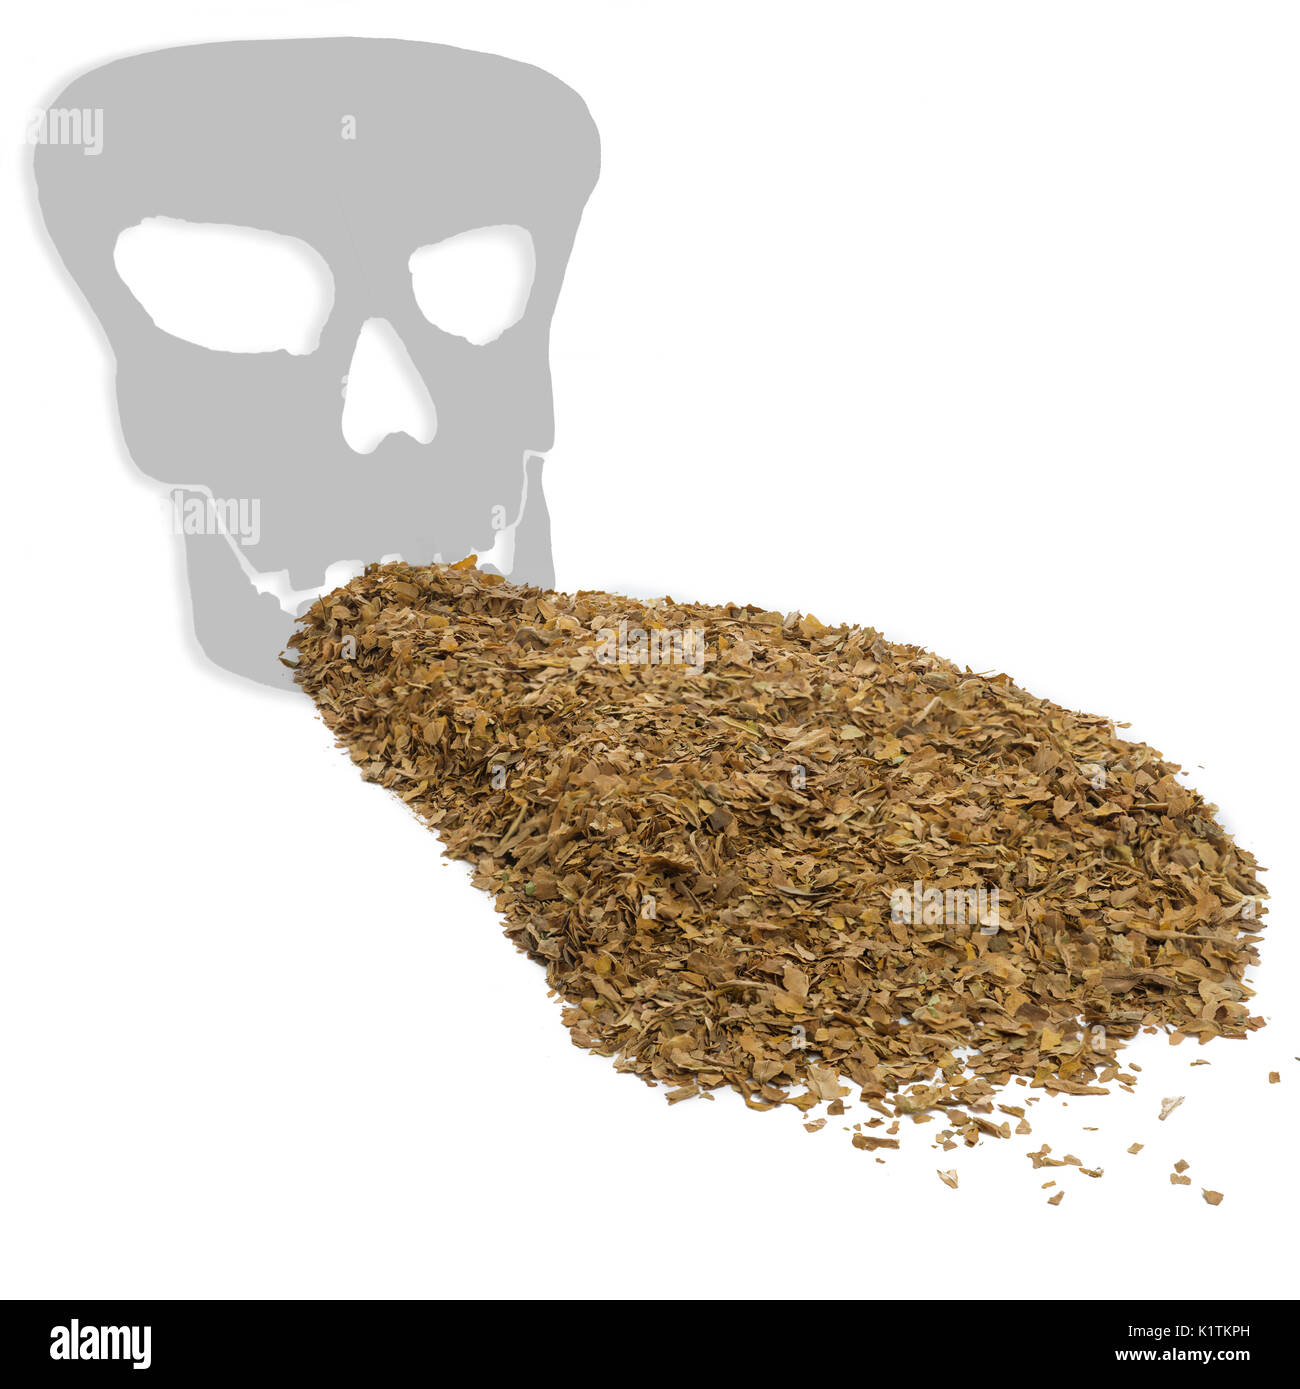 square image ,concept health warning smoking kills  showing unprocessed dry tobacco leaves with a death skull shadow on a white background - Stock Image